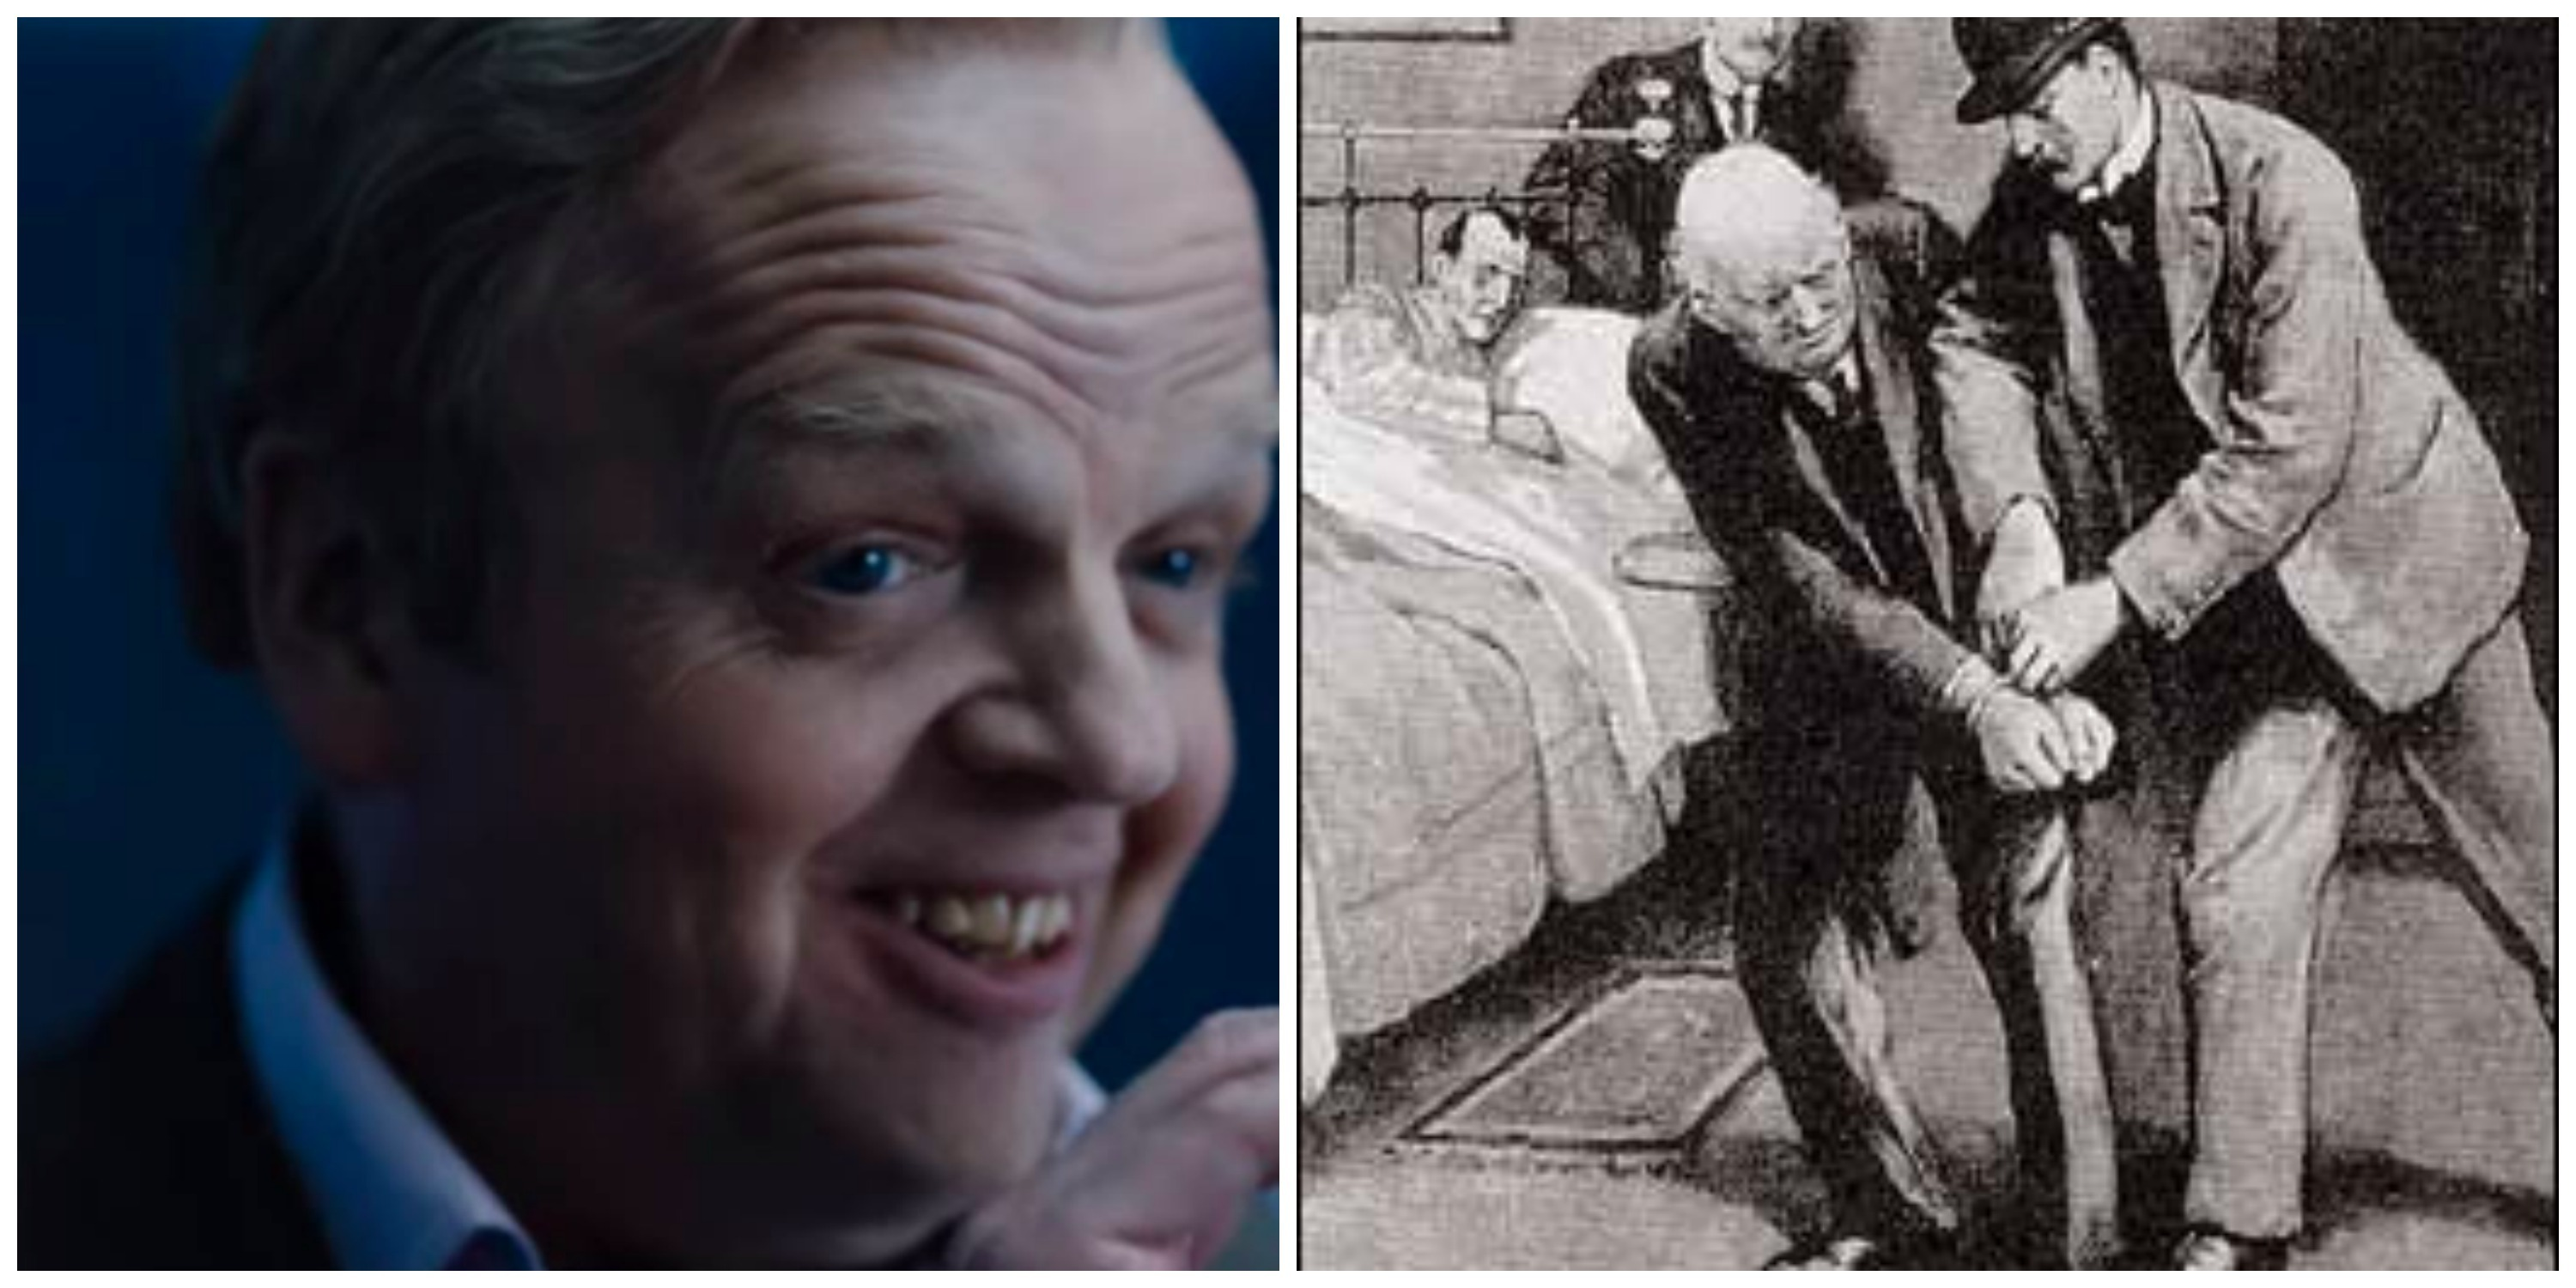 LEFT: Toby Jones as Culverton Smith. RIGHT: Smith is arrested in the original story. (Illustration by Sidney Paget)